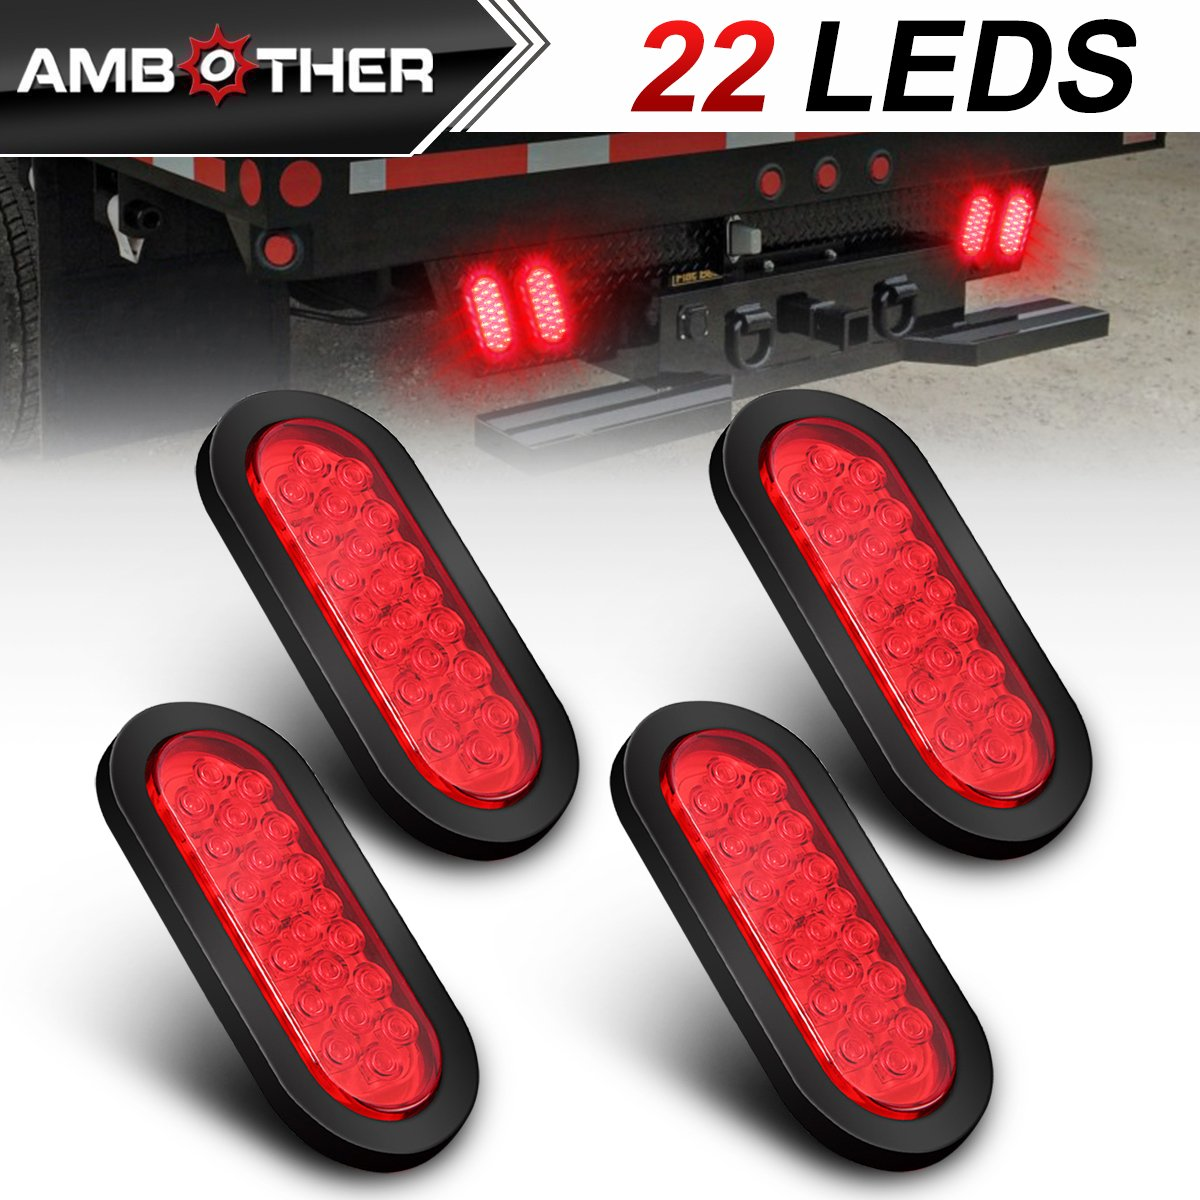 AMBOTHER 6' 22-LED Oval LED Trailer Lights Stop Turn Signal Brake Marker Tail Light, Flush Mount for Truck Trailer Trail Bus 12V Red (Pack of 2)